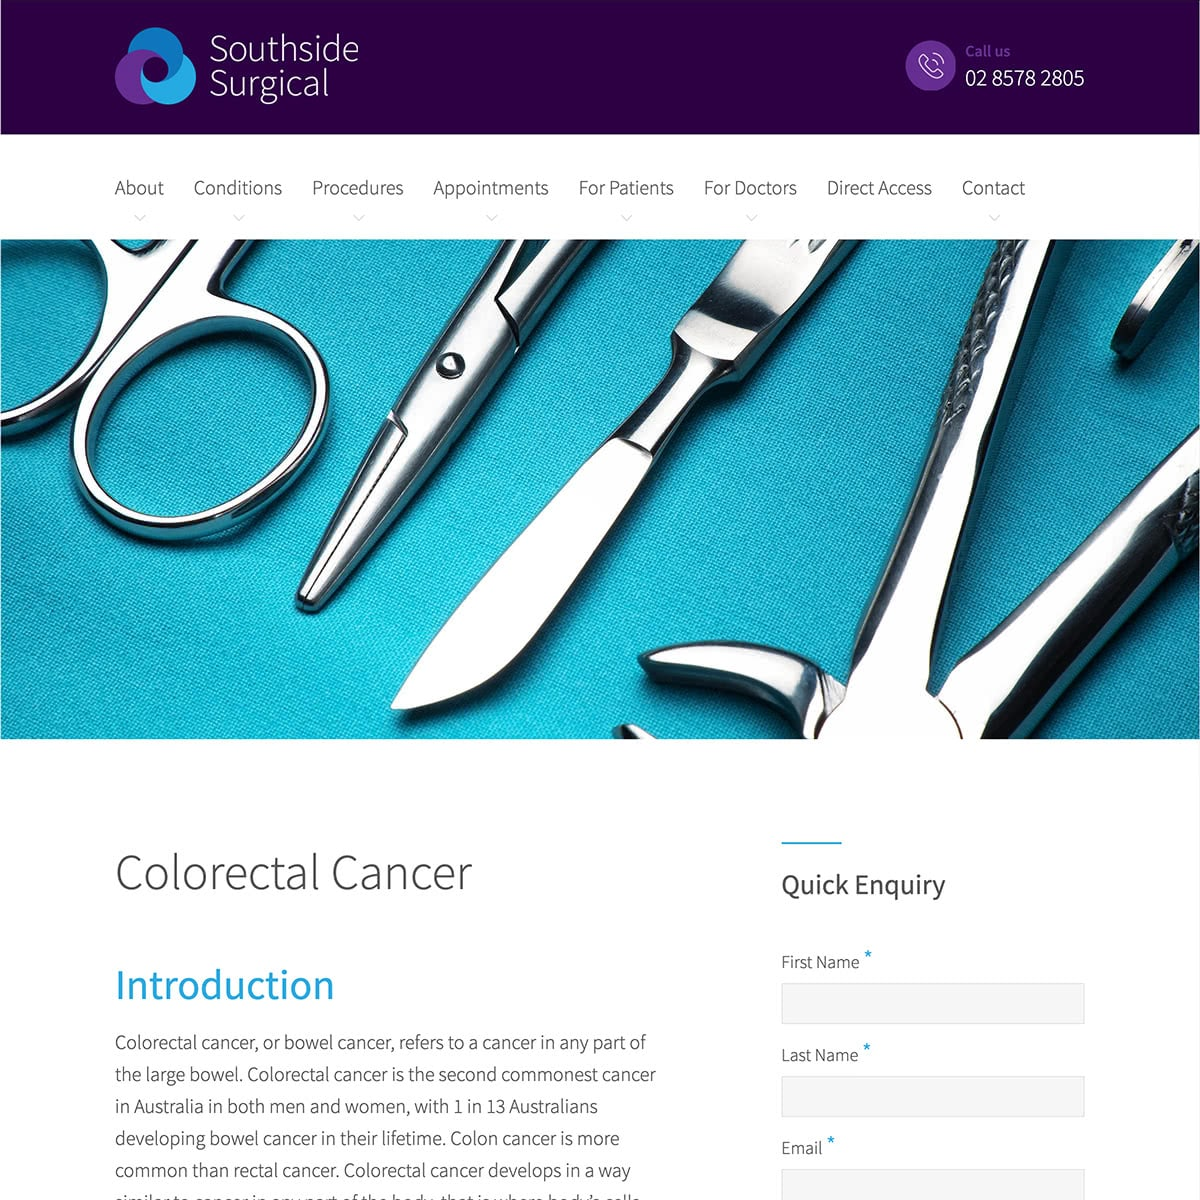 Southside Surgical - Conditions Page